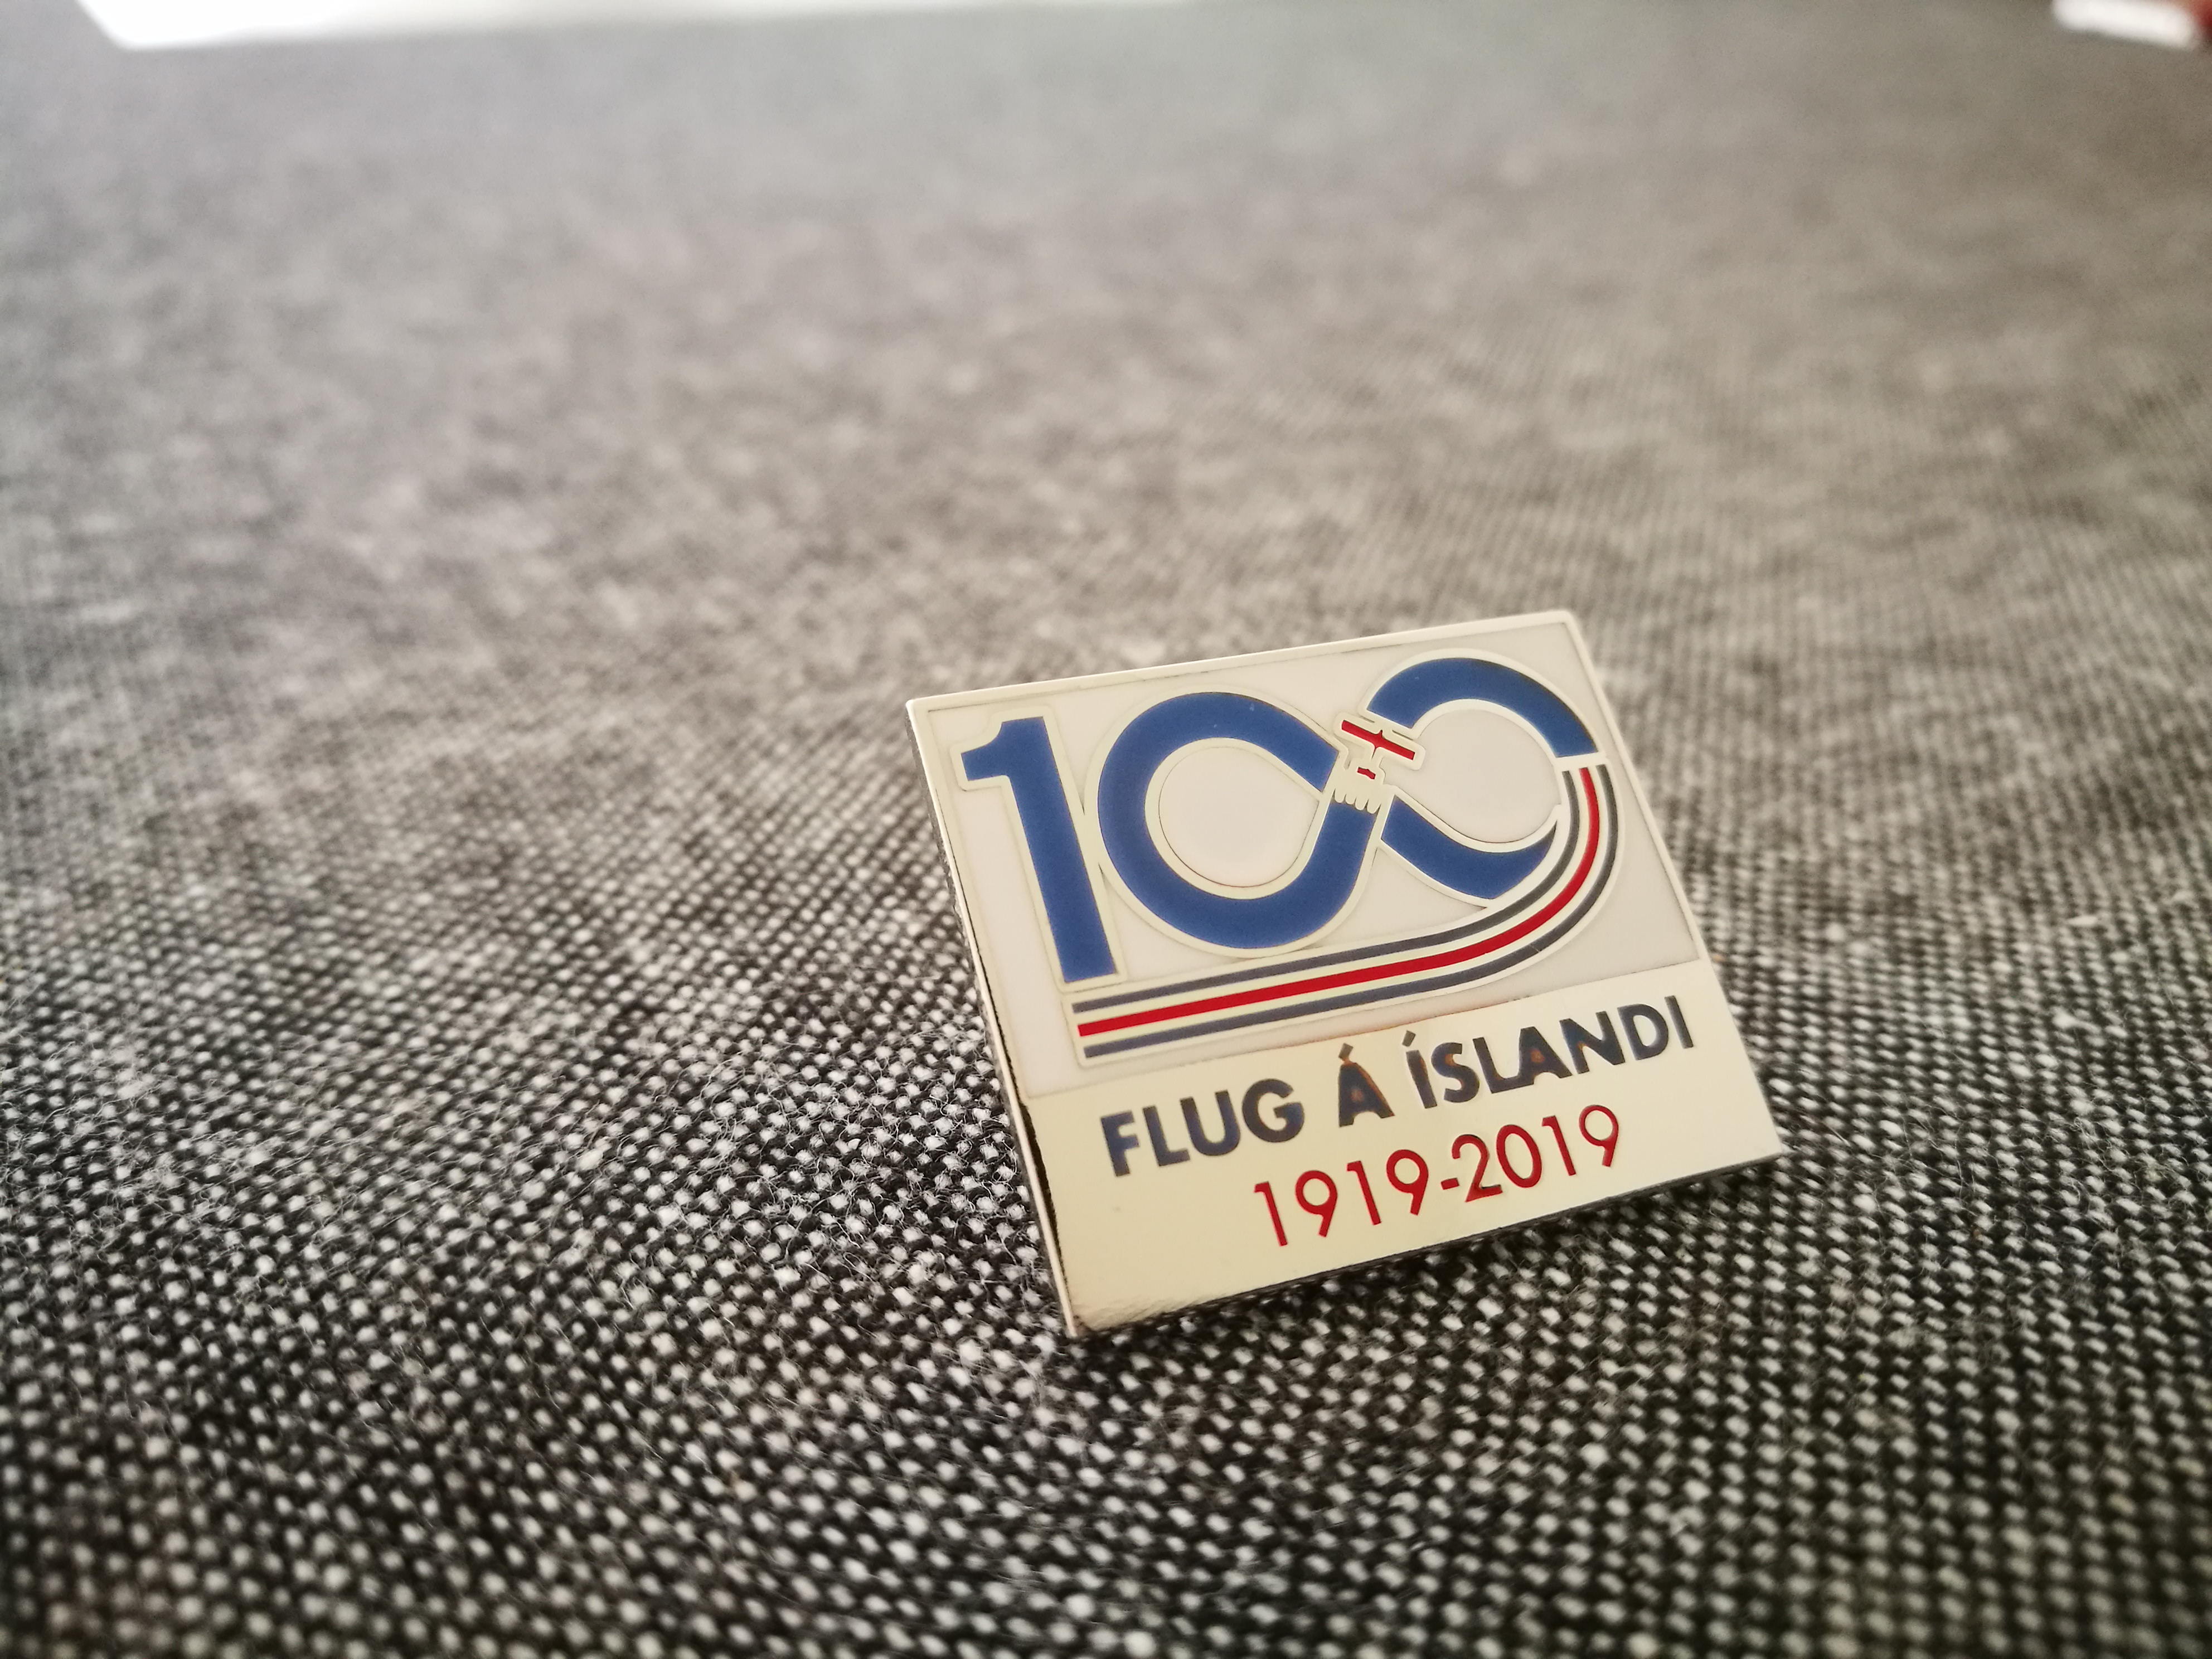 Commemorative badges in honor of the 100th anniversary of Icelandic aviation // Source: Flugblogg